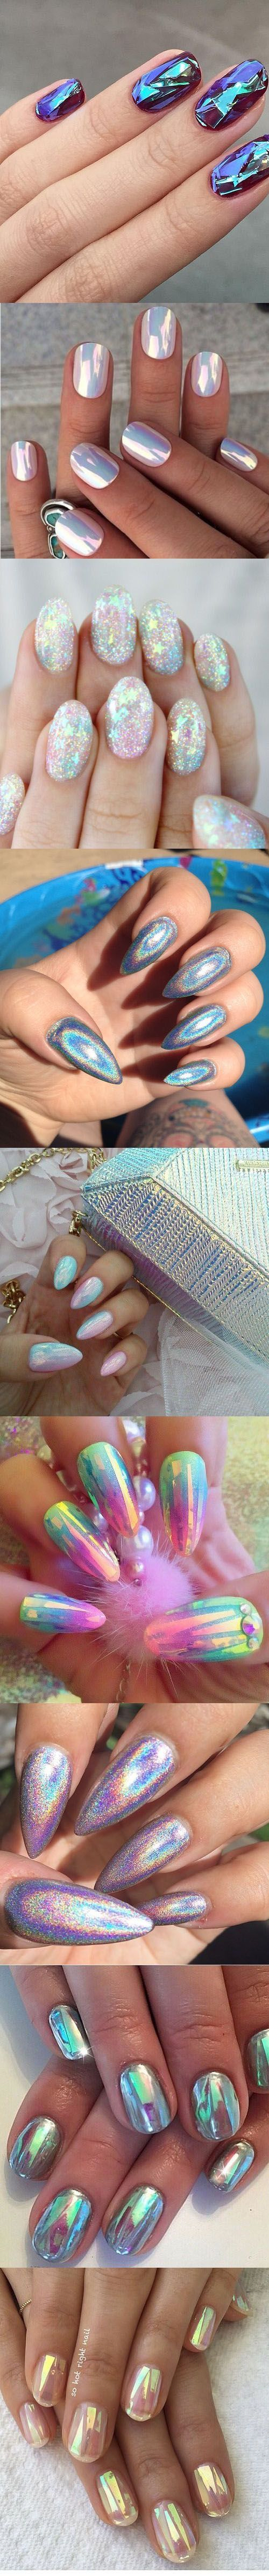 best images about nail designs on pinterest